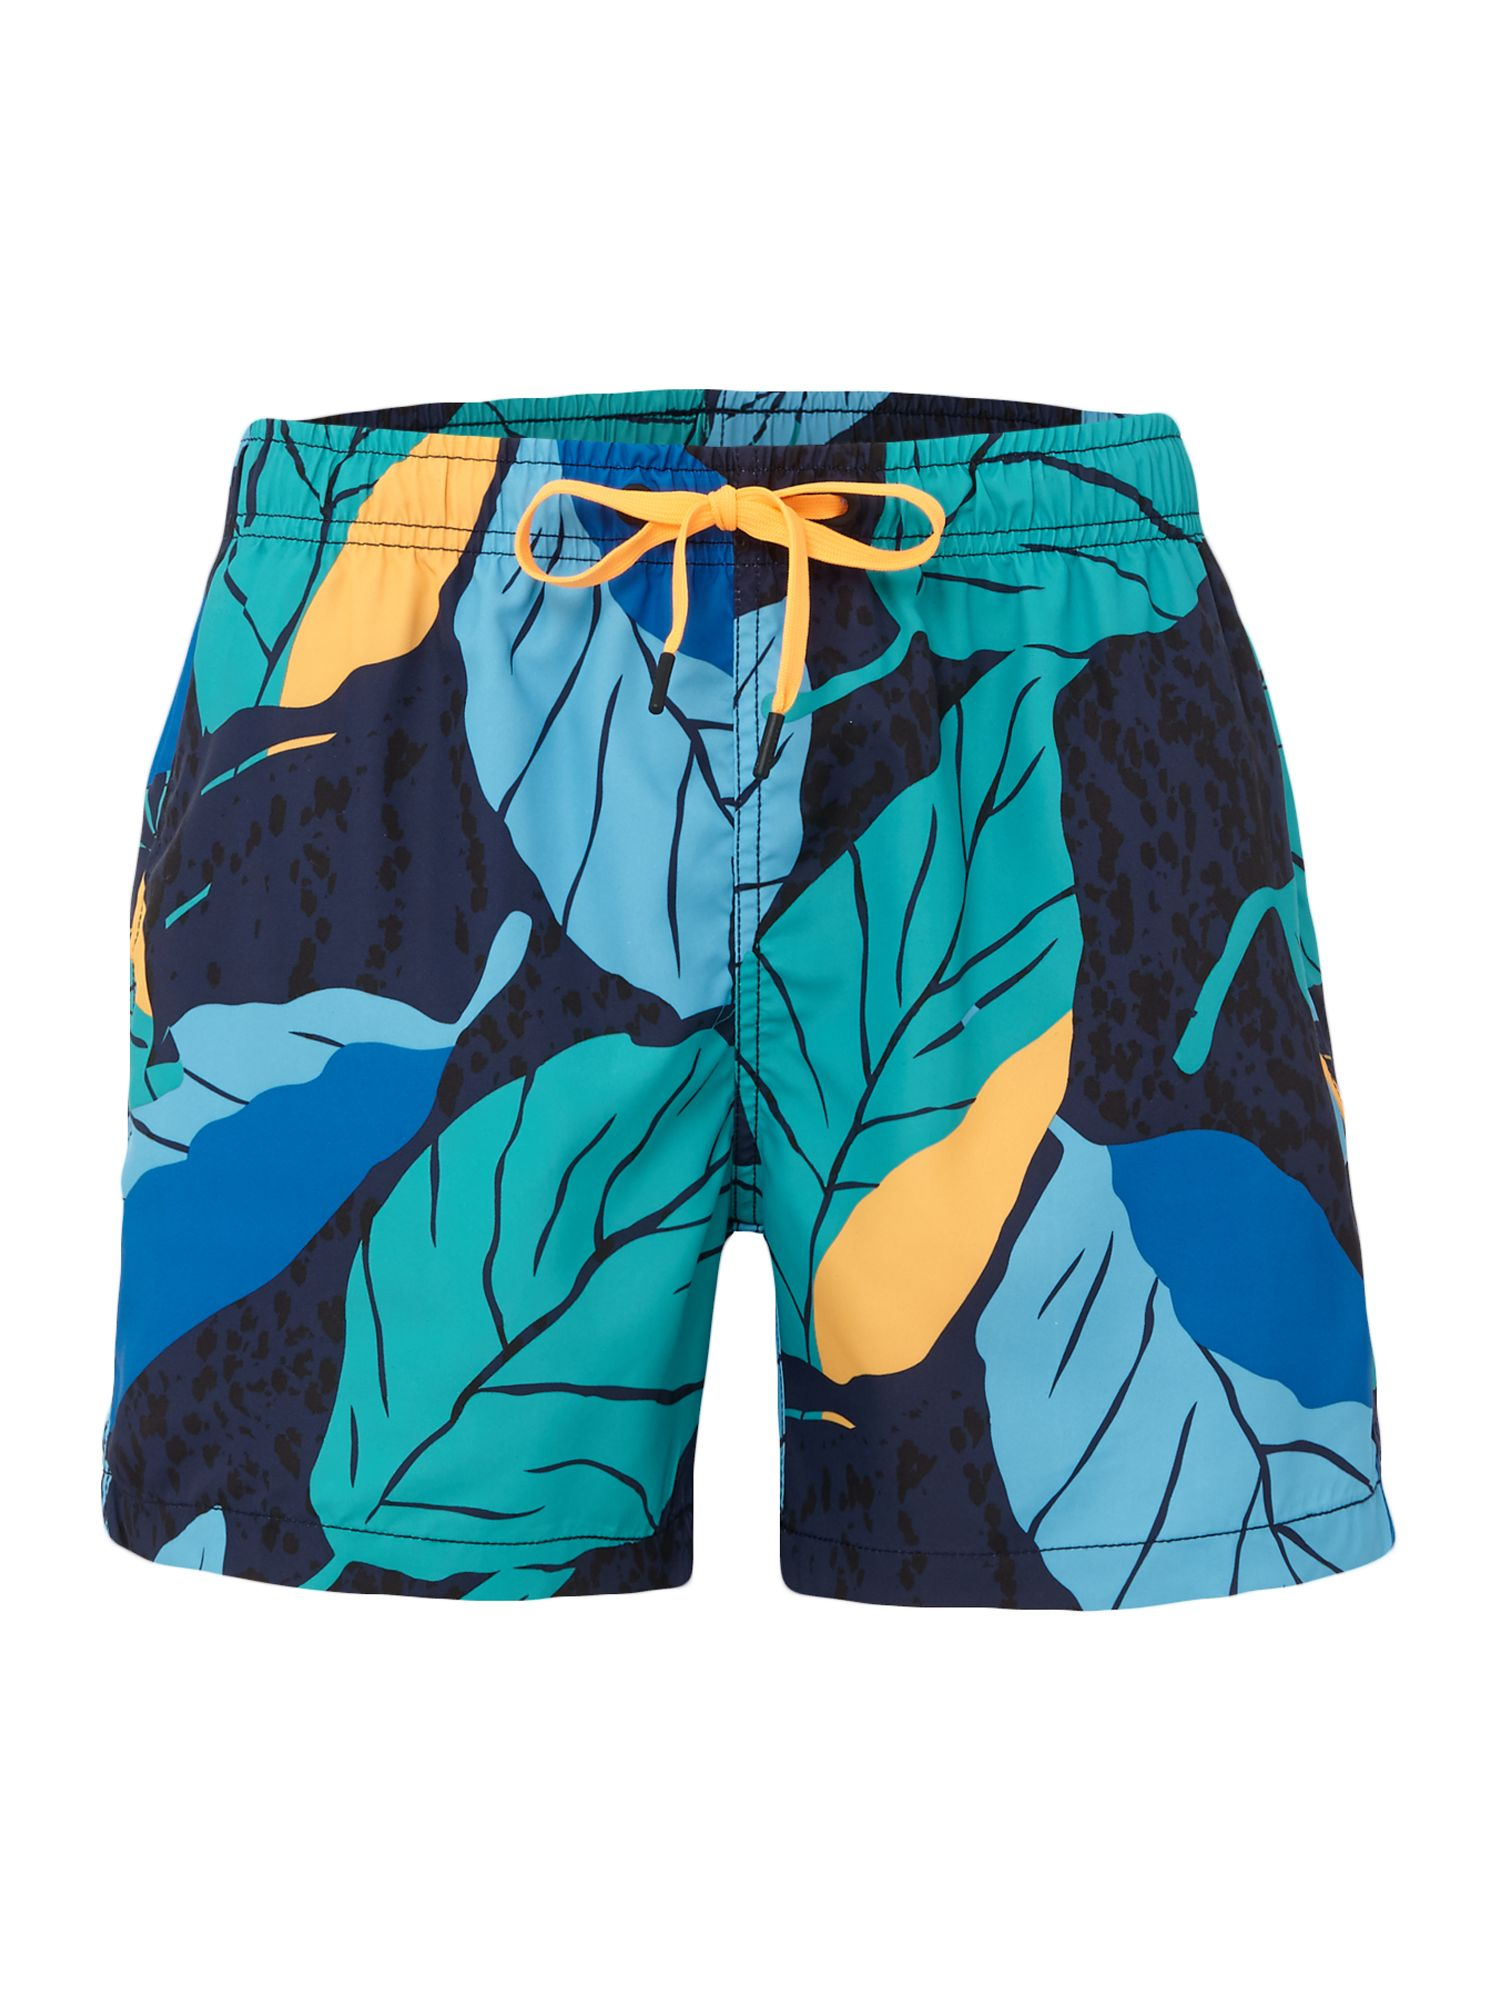 Men's Bjorn Borg Leaf Print Swim shorts, Blue